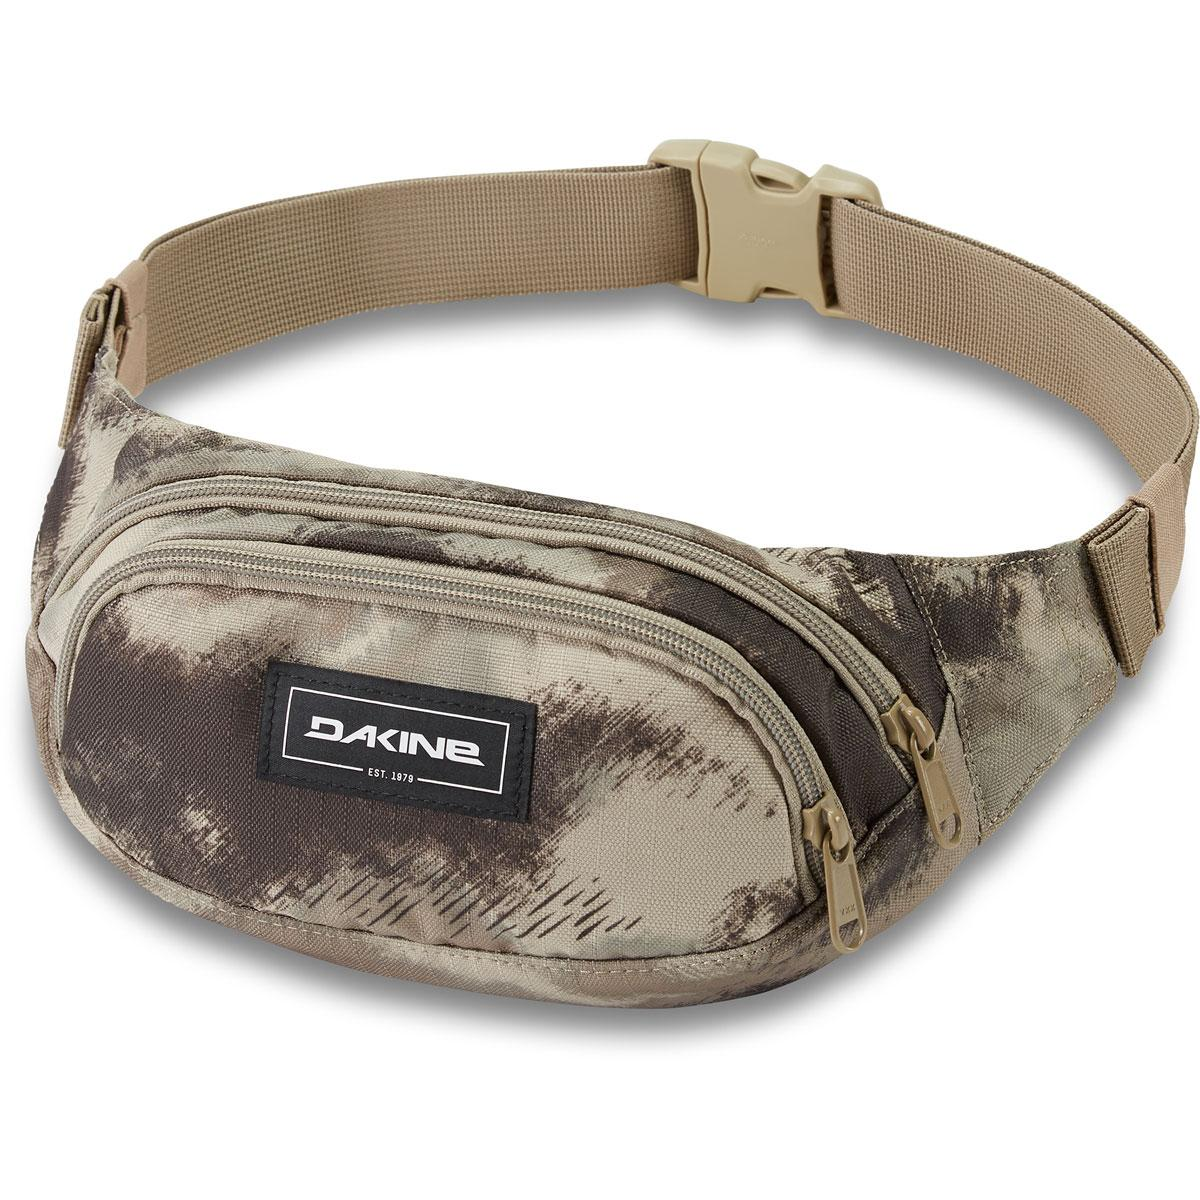 Dakine Hip Pack in Ashcroft Camo